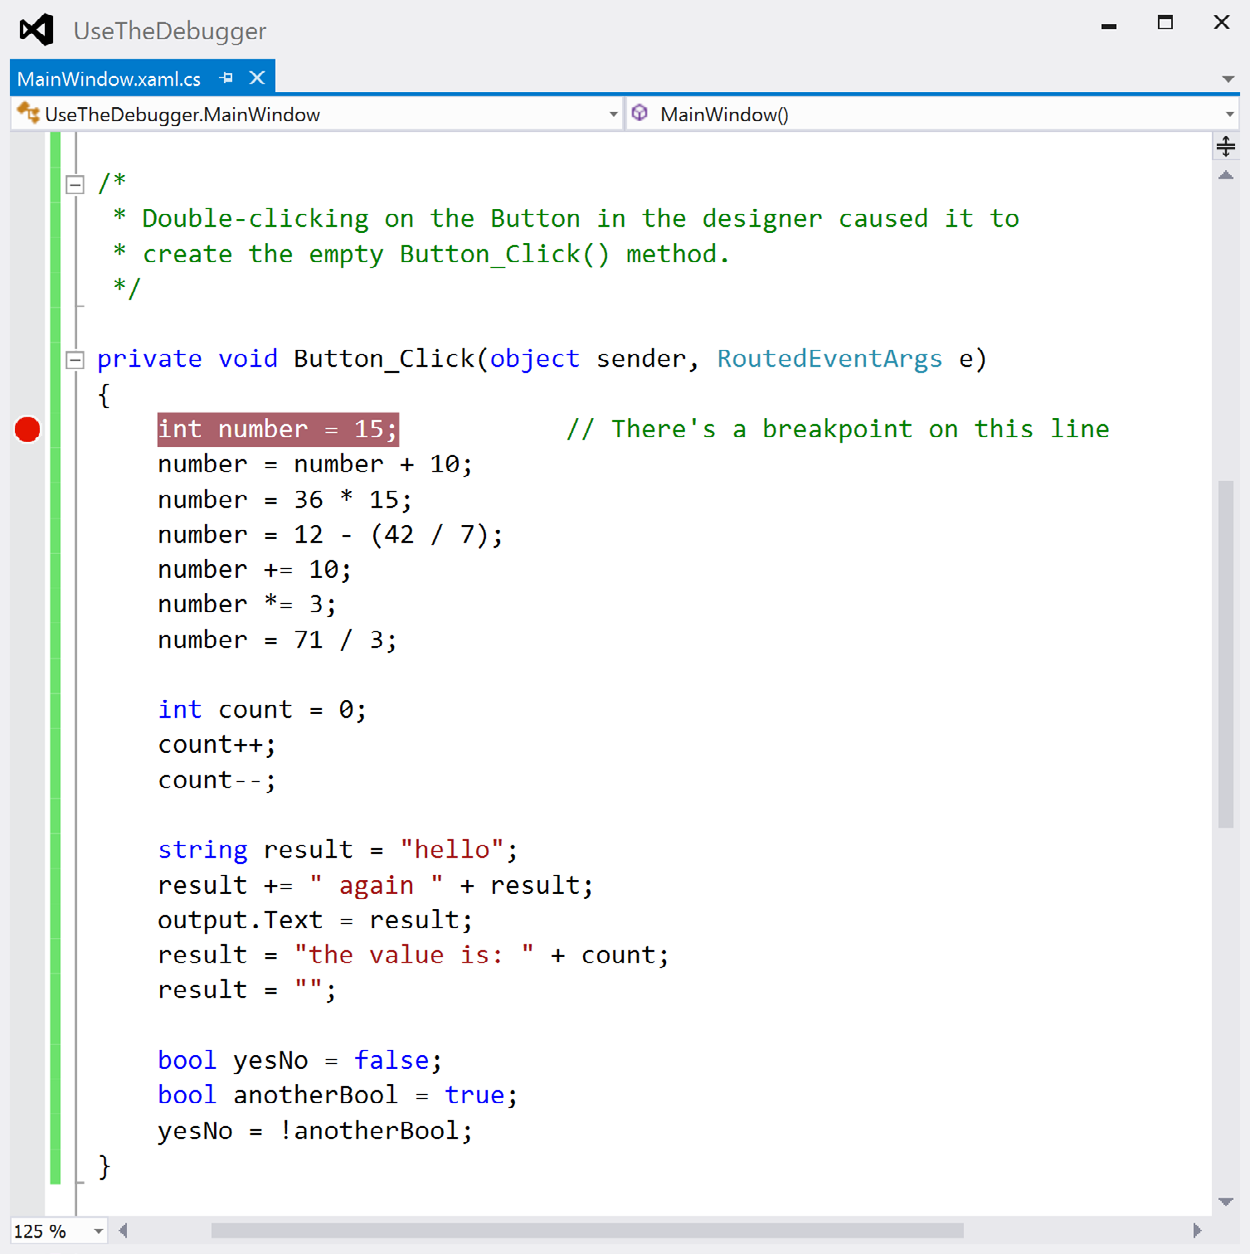 windows presentation foundation Use the debugger to see your variables change The debugger is a great tool for understanding how your programs work.